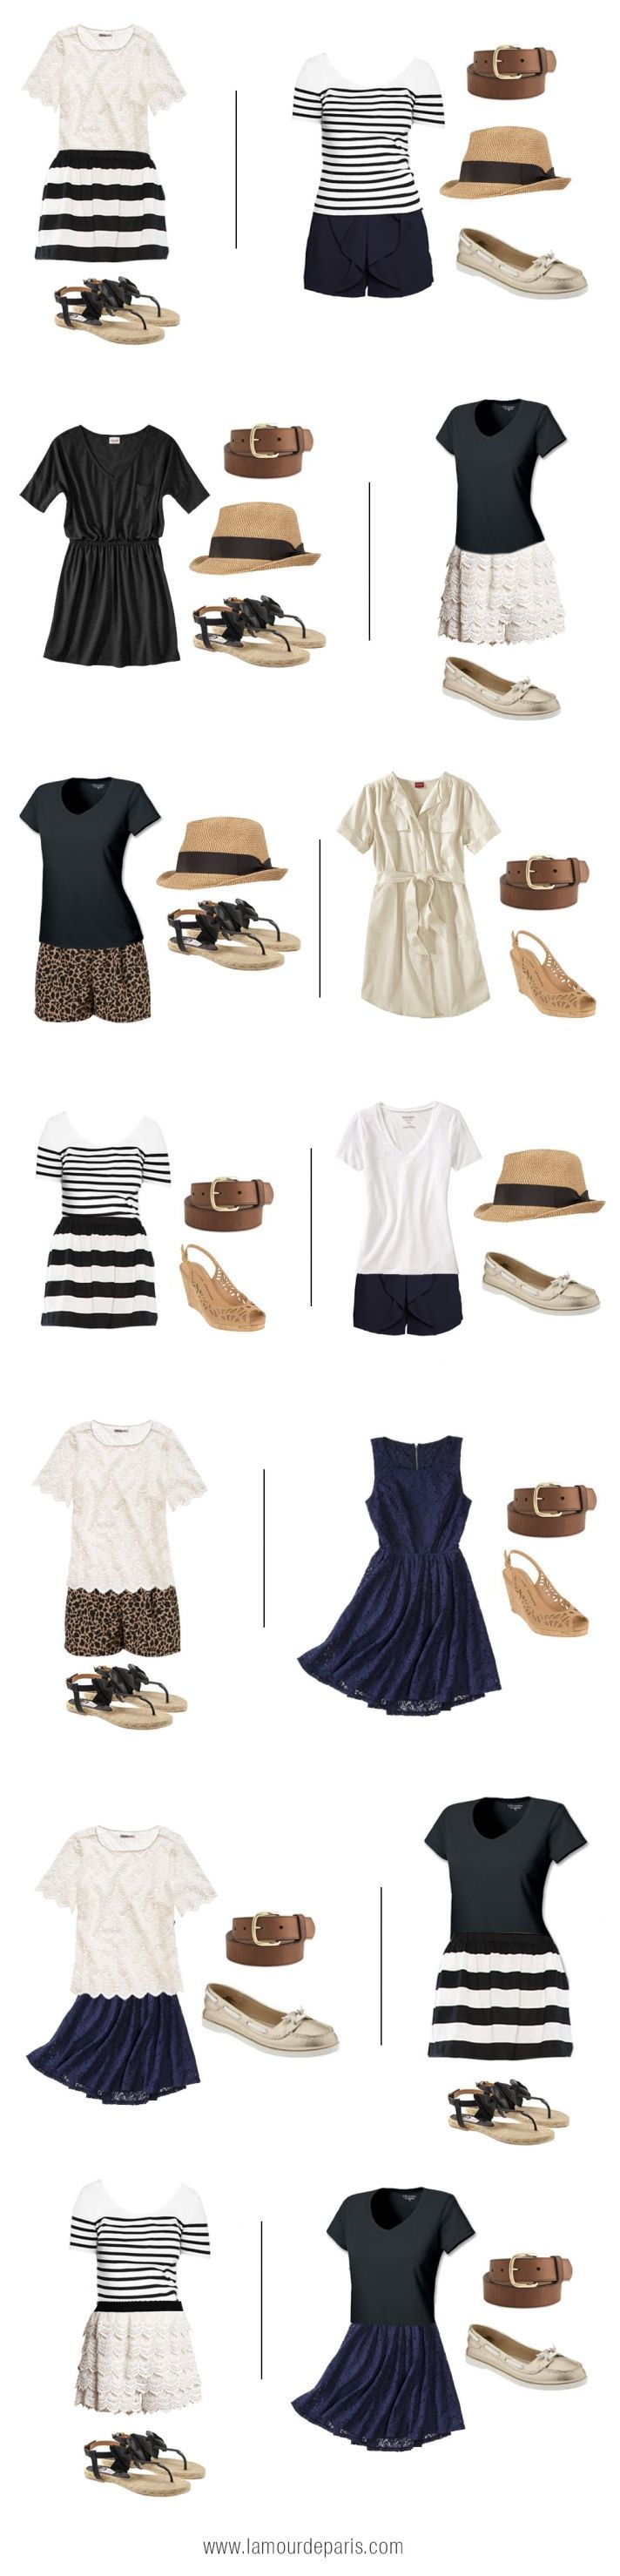 How to pack for a vacation to Europe in a carry-on suitcase:  Summer Edition